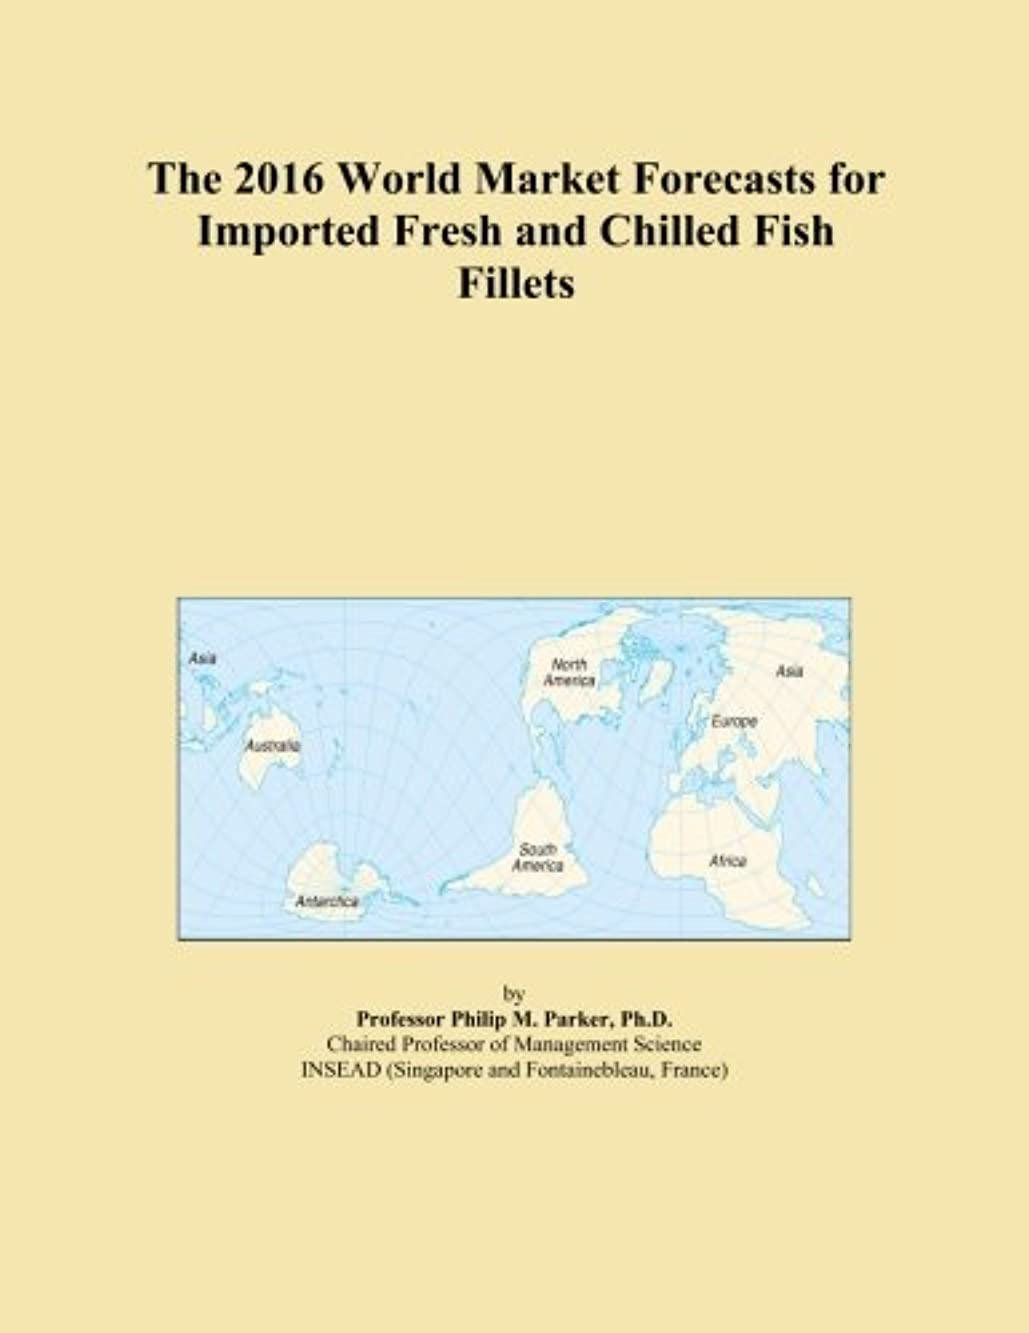 The 2016 World Market Forecasts for Imported Fresh and Chilled Fish Fillets